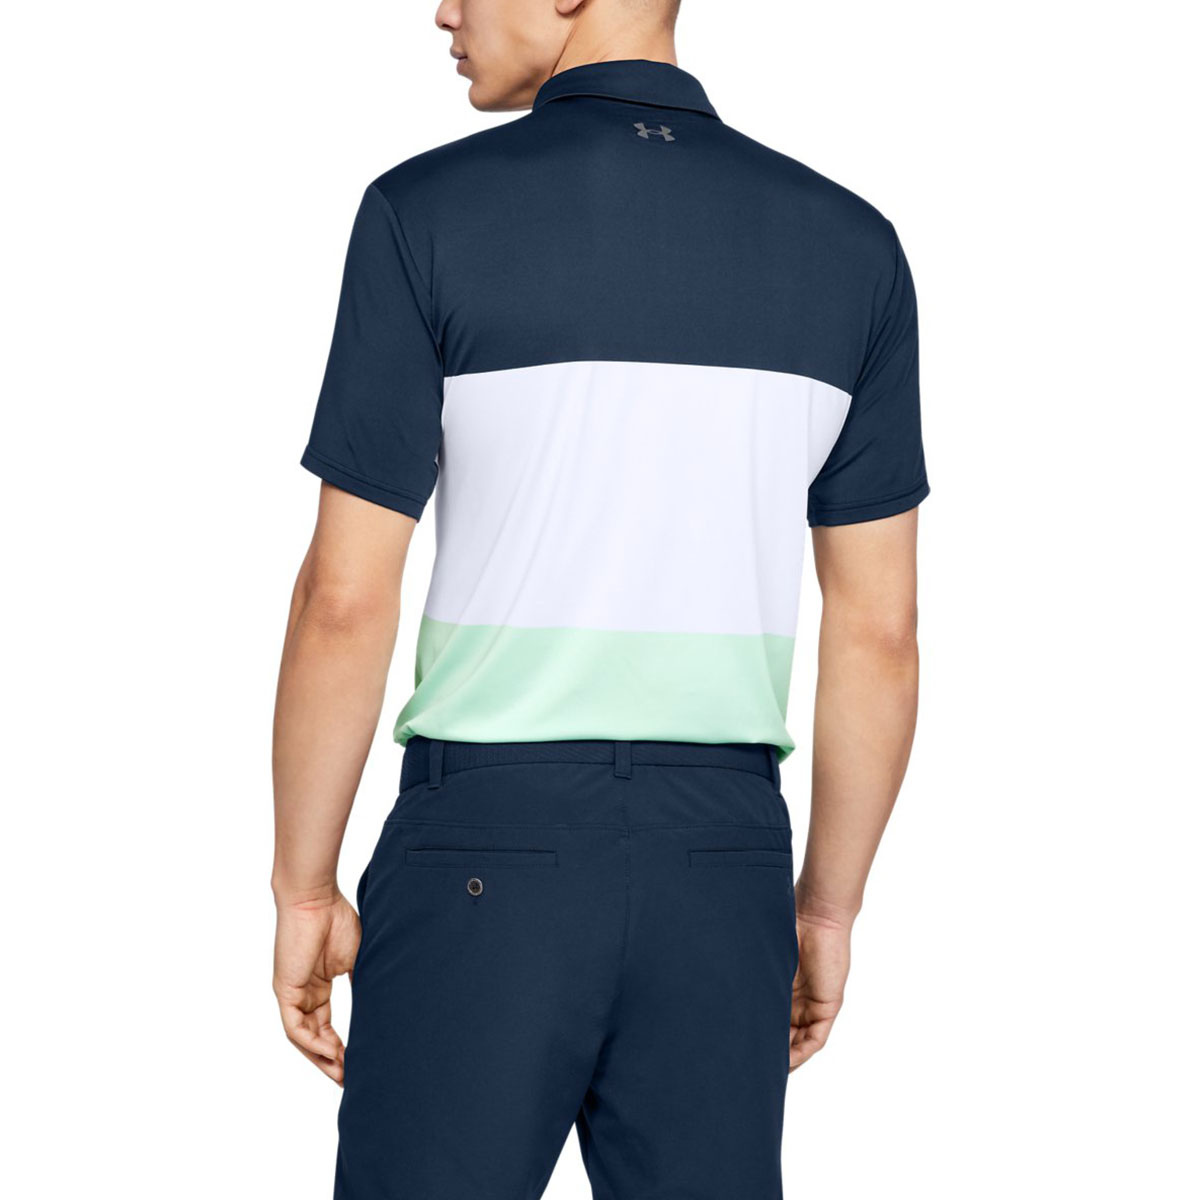 Under-Armour-Mens-2019-Playoff-Polo-2-0-Breathable-Light-Stretch-Polo-Shirt thumbnail 13